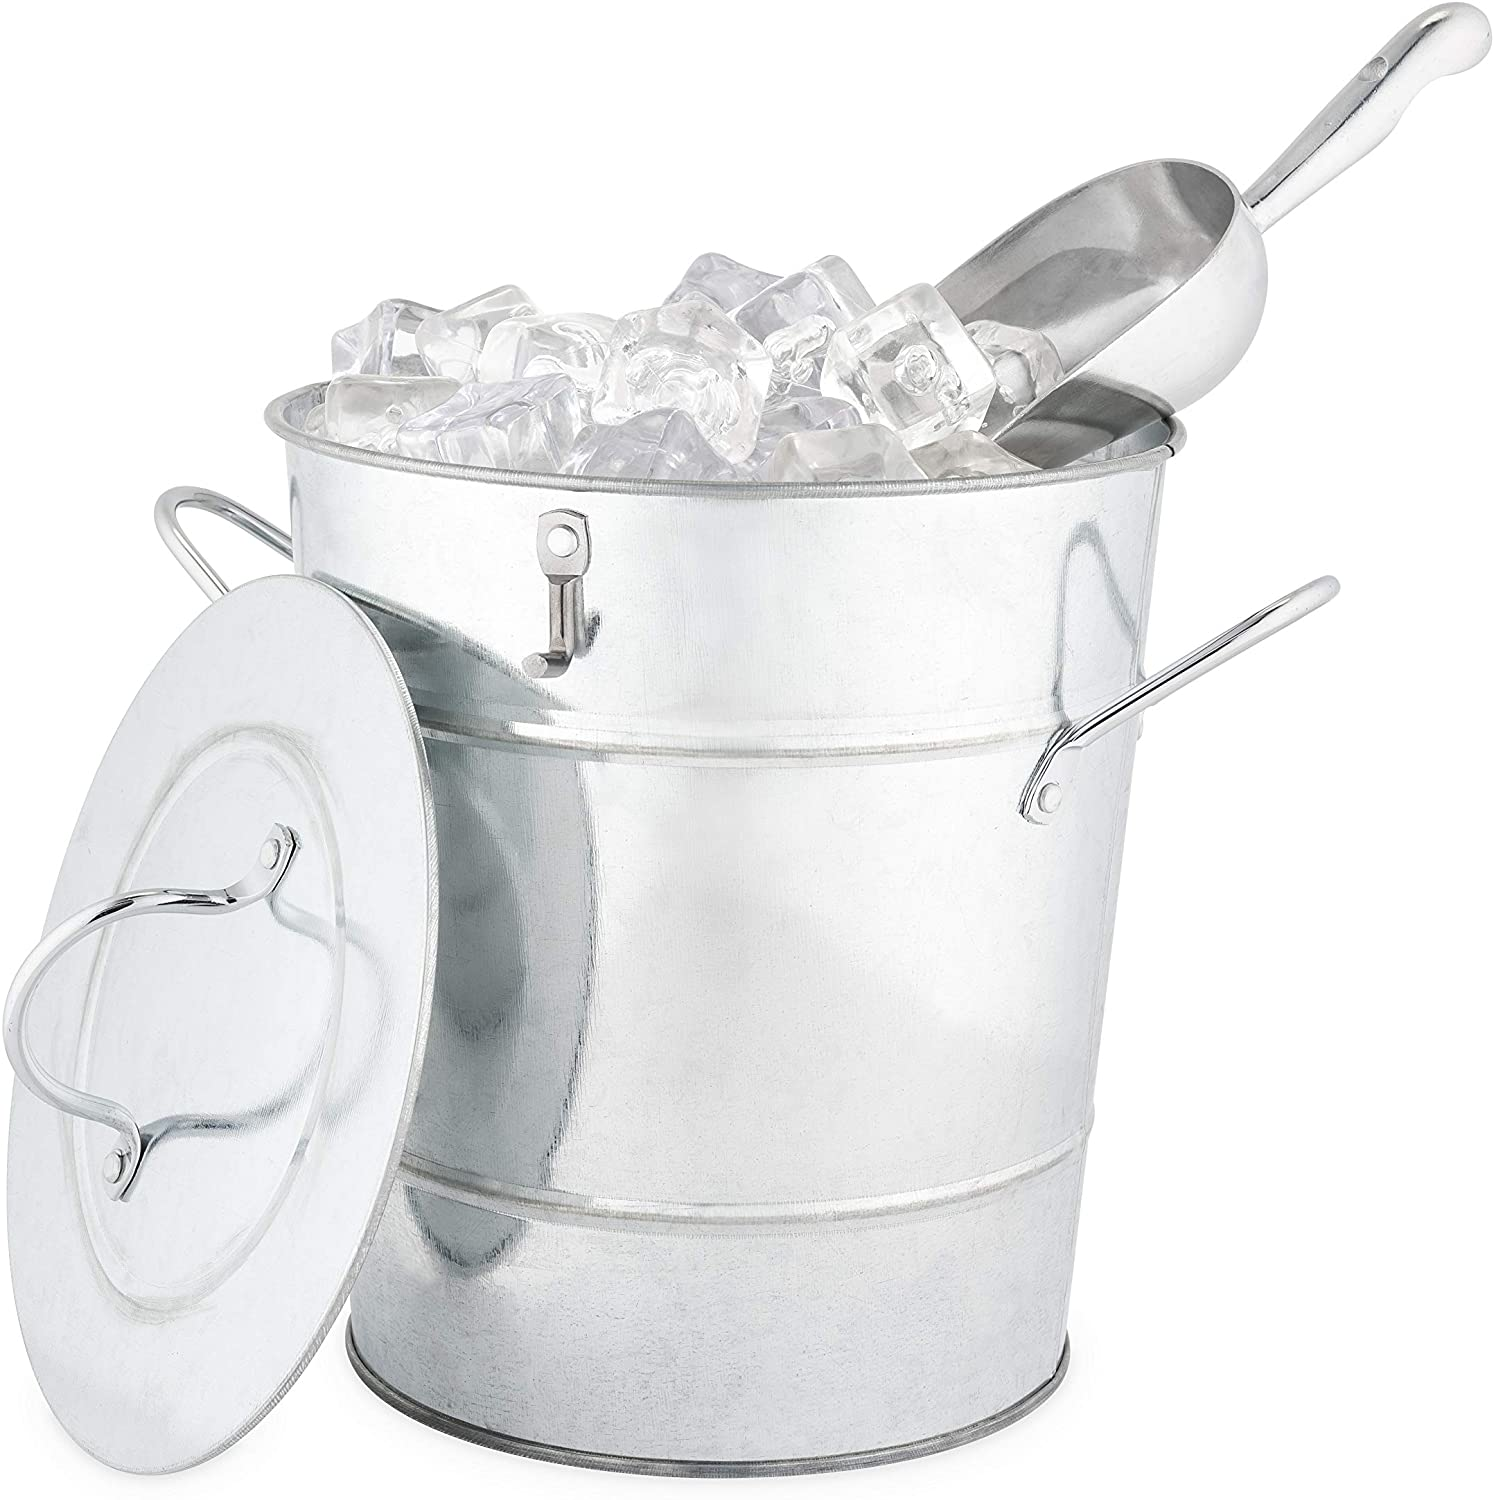 Twine Country Home Galvanized Bucket with Lid and Ice Scoop Stainless Steel, 10.5